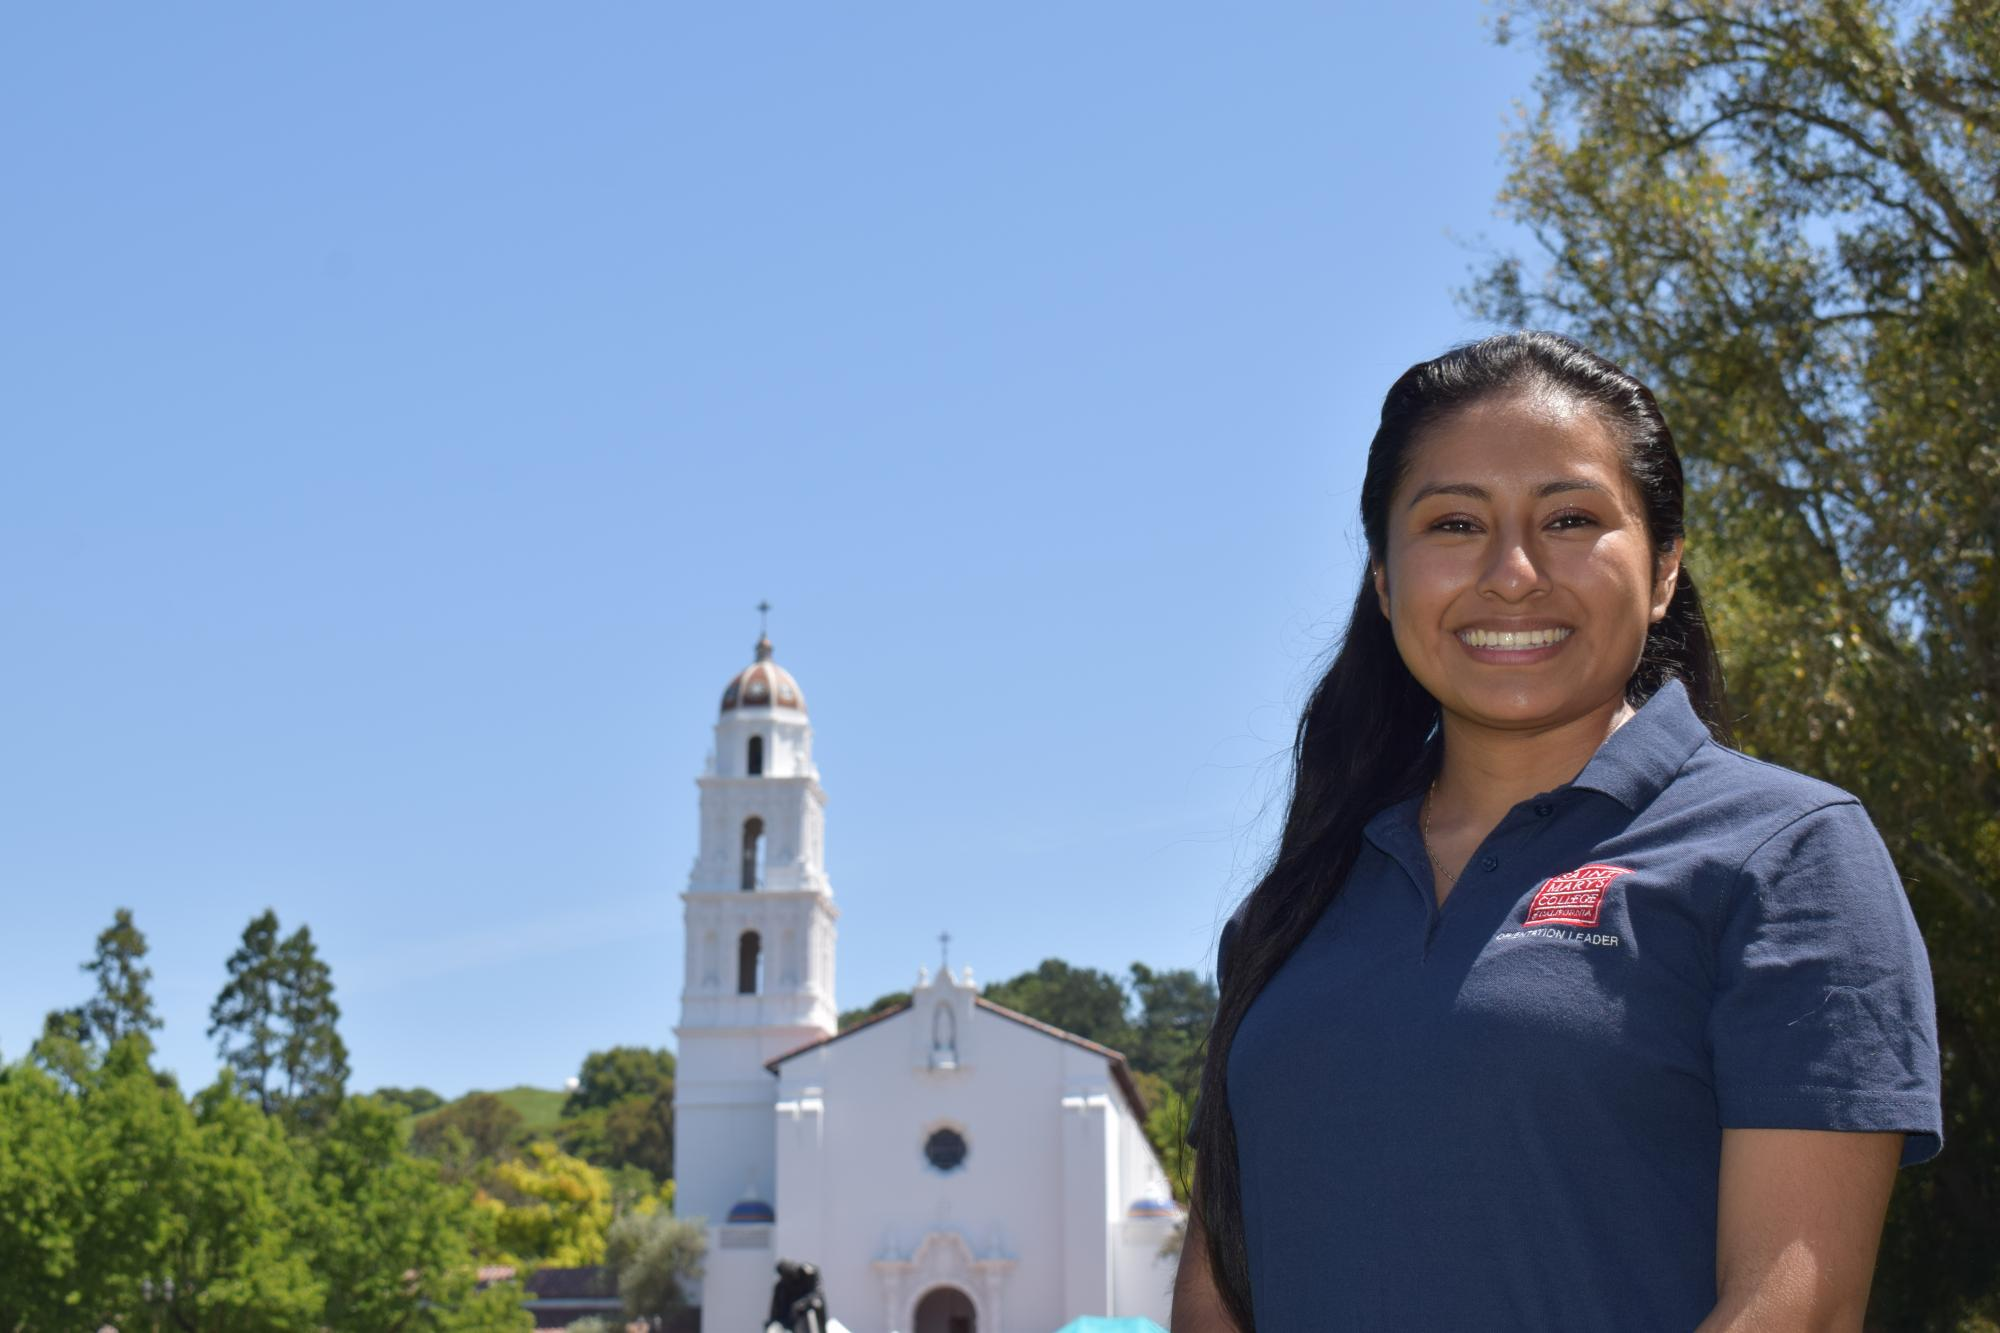 Hola! I am Lindsey Aquino Robles and I am from Santa Cruz, CA. I am a sophomore at SMC and am double majoring in political science and Spanish. I am involved with Balle Folklorico, Jazz Band and AVP. I am really looking forward to meeting all of the incoming students!